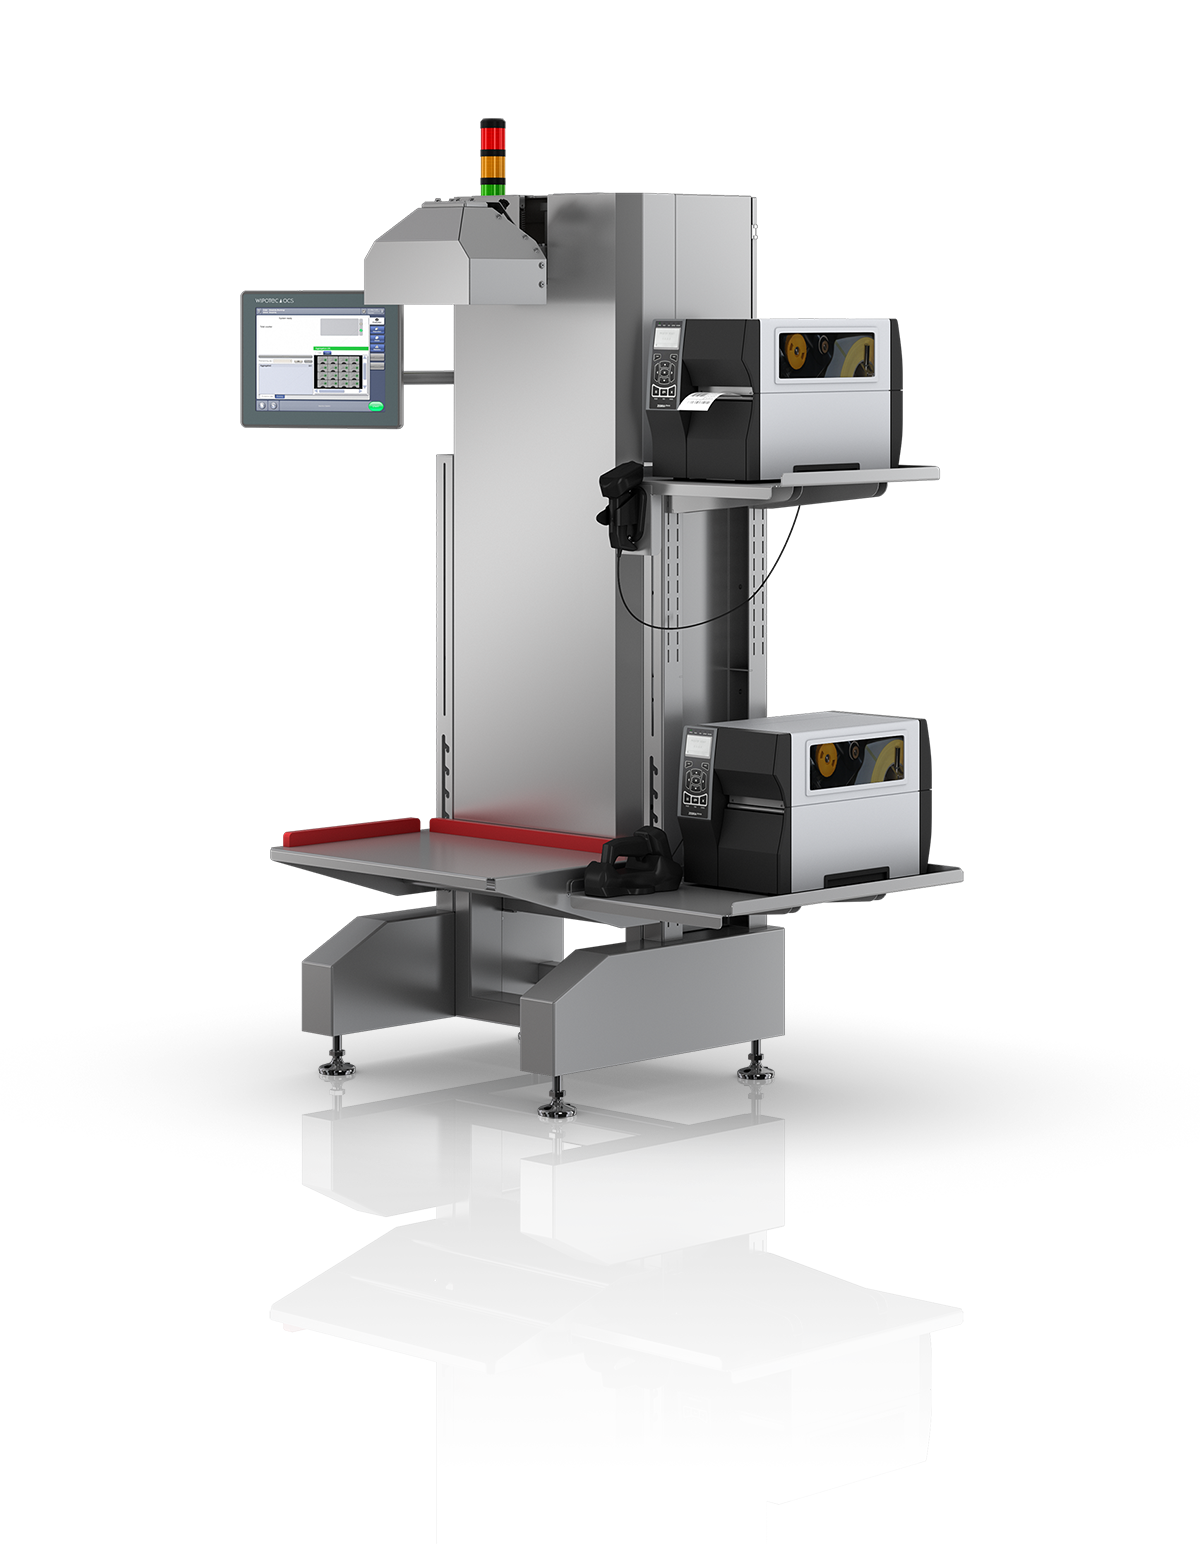 At INTERPHEX NYC, WIPOTEC-OCS to Demonstrate Serialization & Aggregation Units Compatible with Its End-of-Line Checkweighing Modules